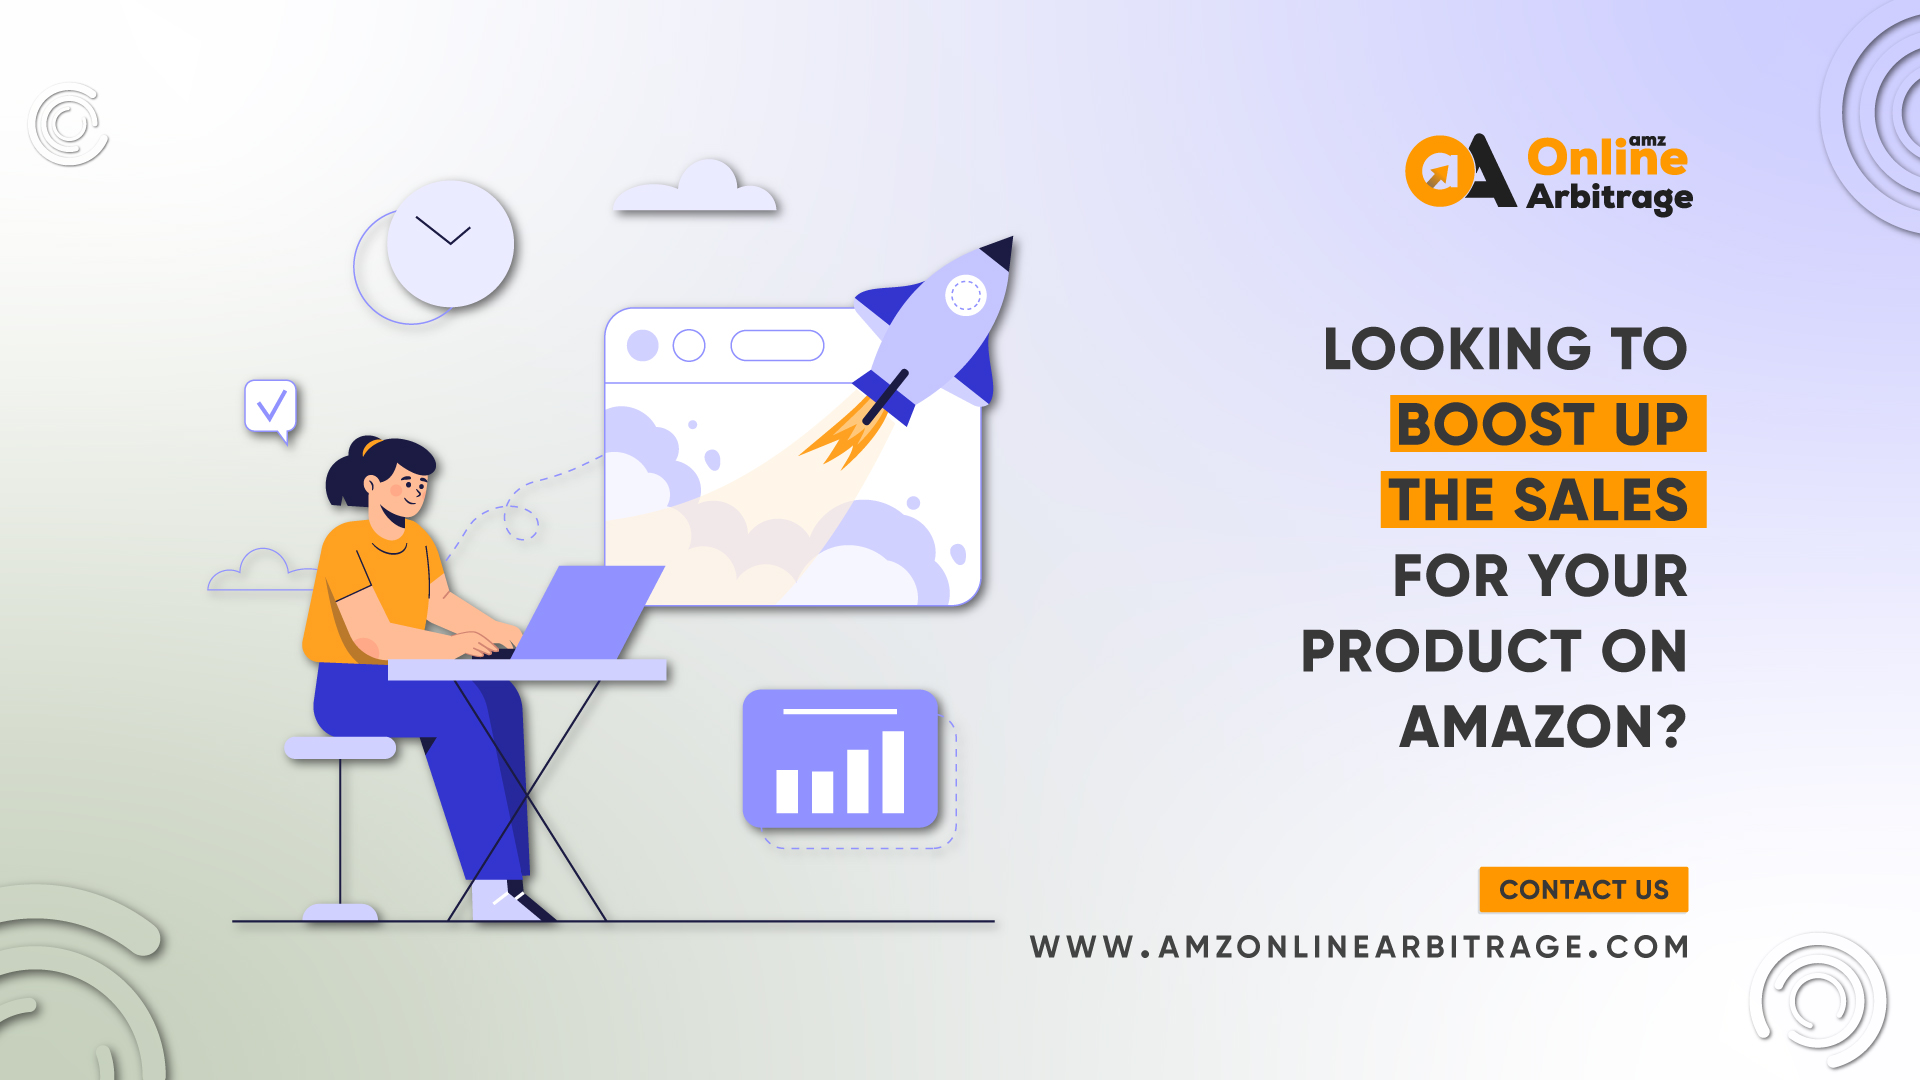 LOOKING TO BOOST UP THE SALES FOR YOUR PRODUCT ON AMAZON?